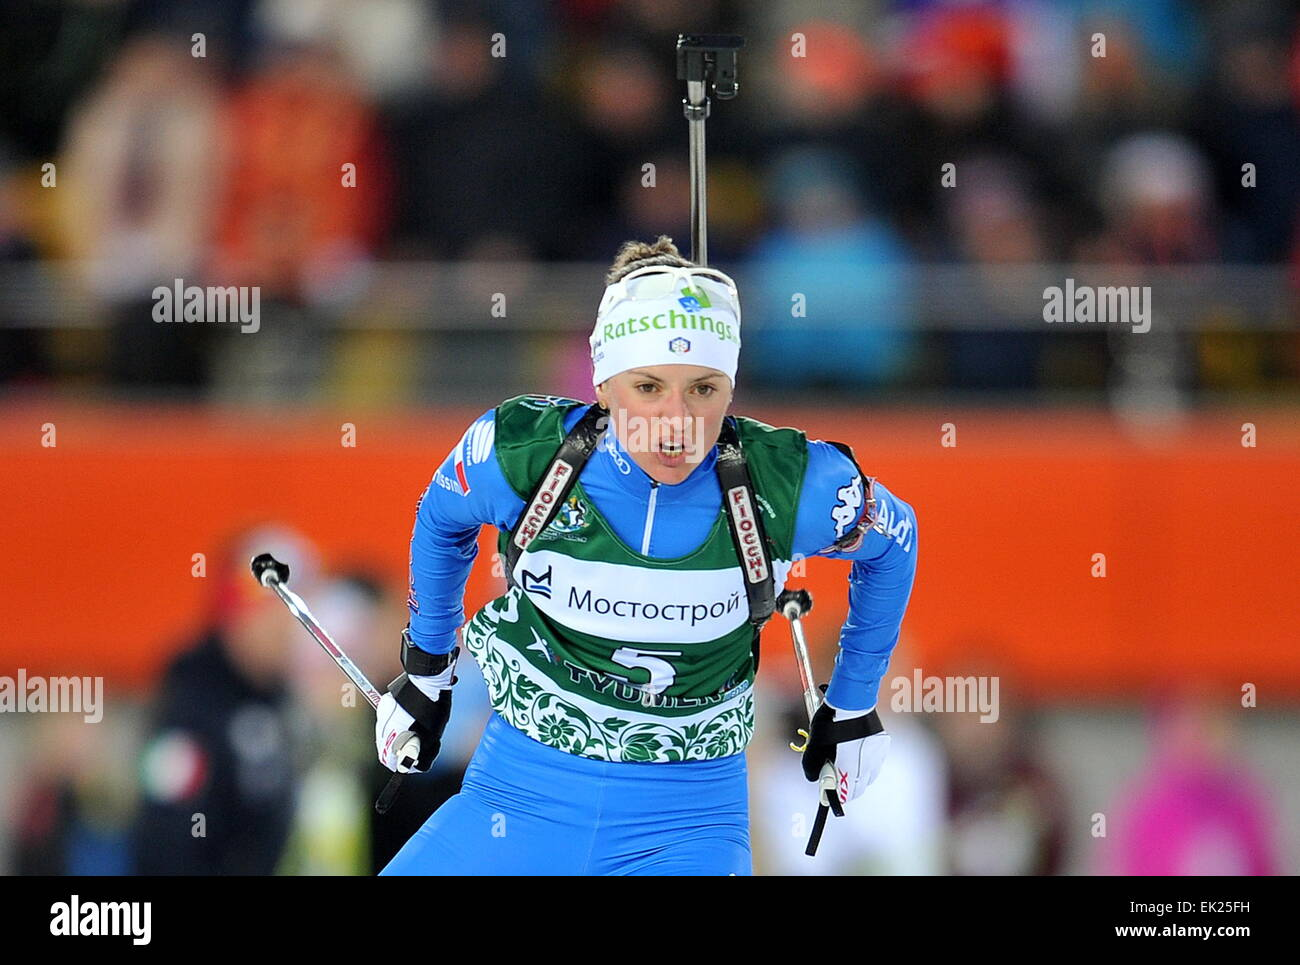 Tyumen, Russia. 4th Apr, 2014. Italy's Karin Oberhofer competes in a mixed relay race at the 2015 Biathlon Champions - Stock Image